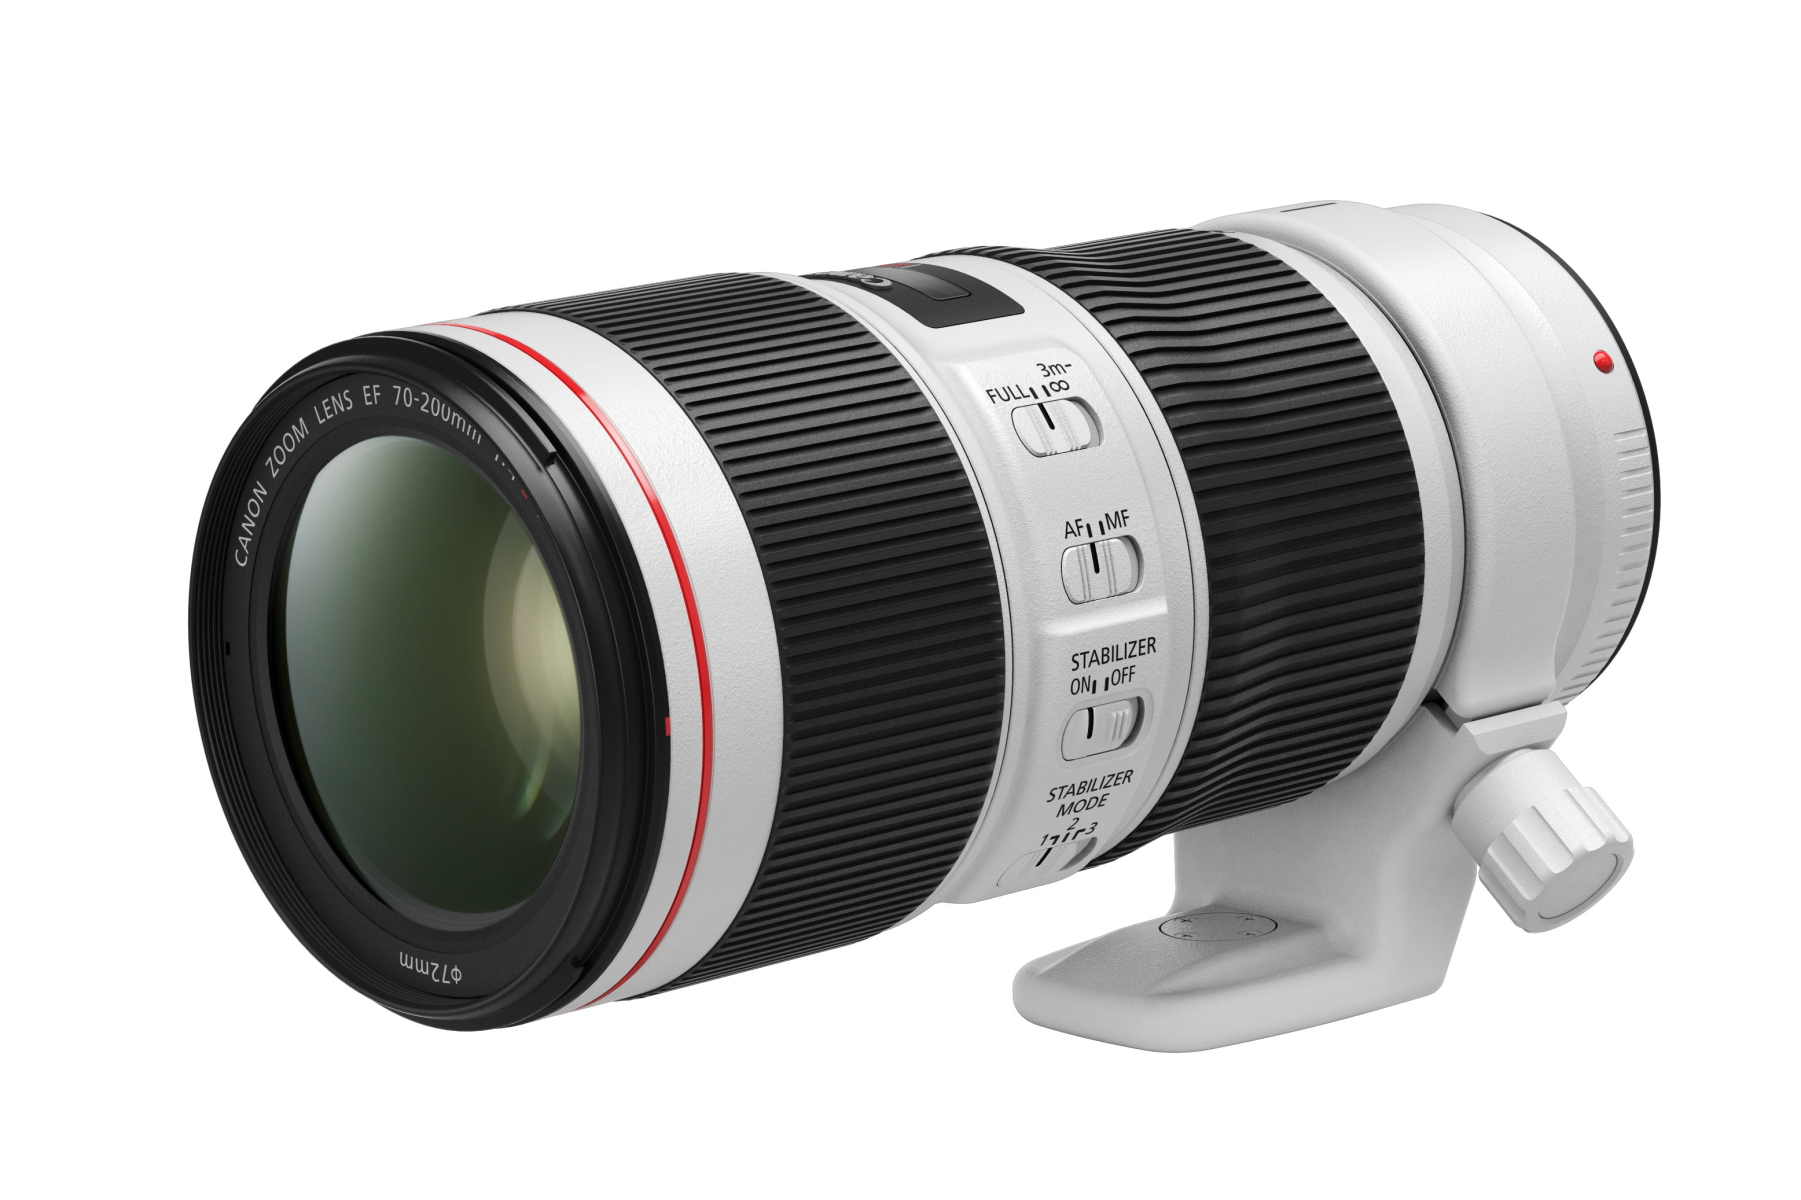 Canon's New EF 70-200mm f/4L IS II USM Professional Telephoto Zoom Lens